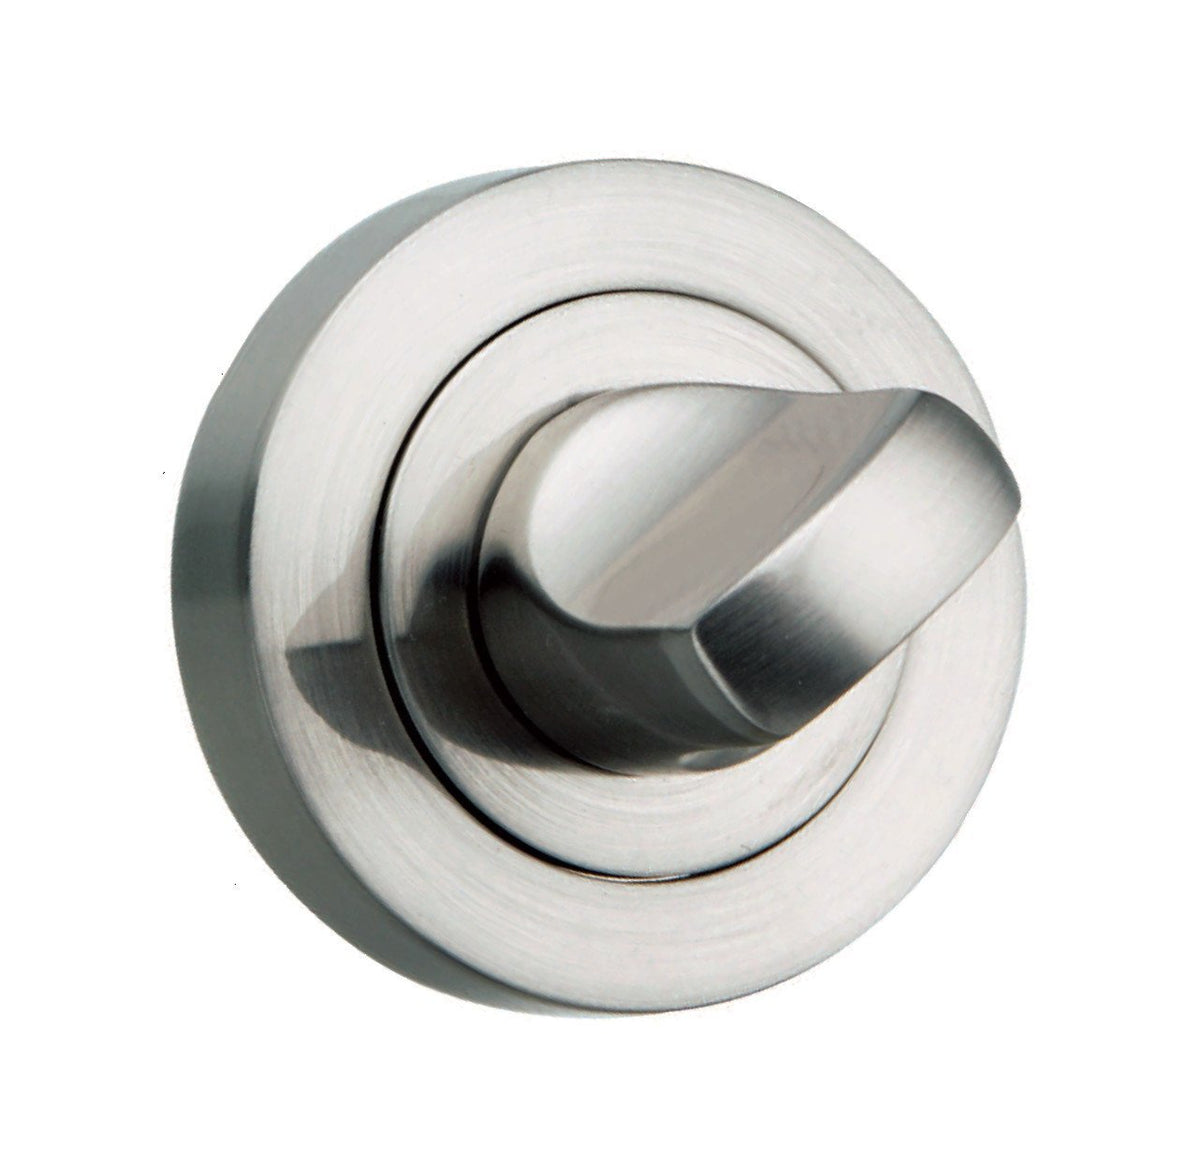 Atlantic Handles Round Rose Wc Turn And Release In A Satin